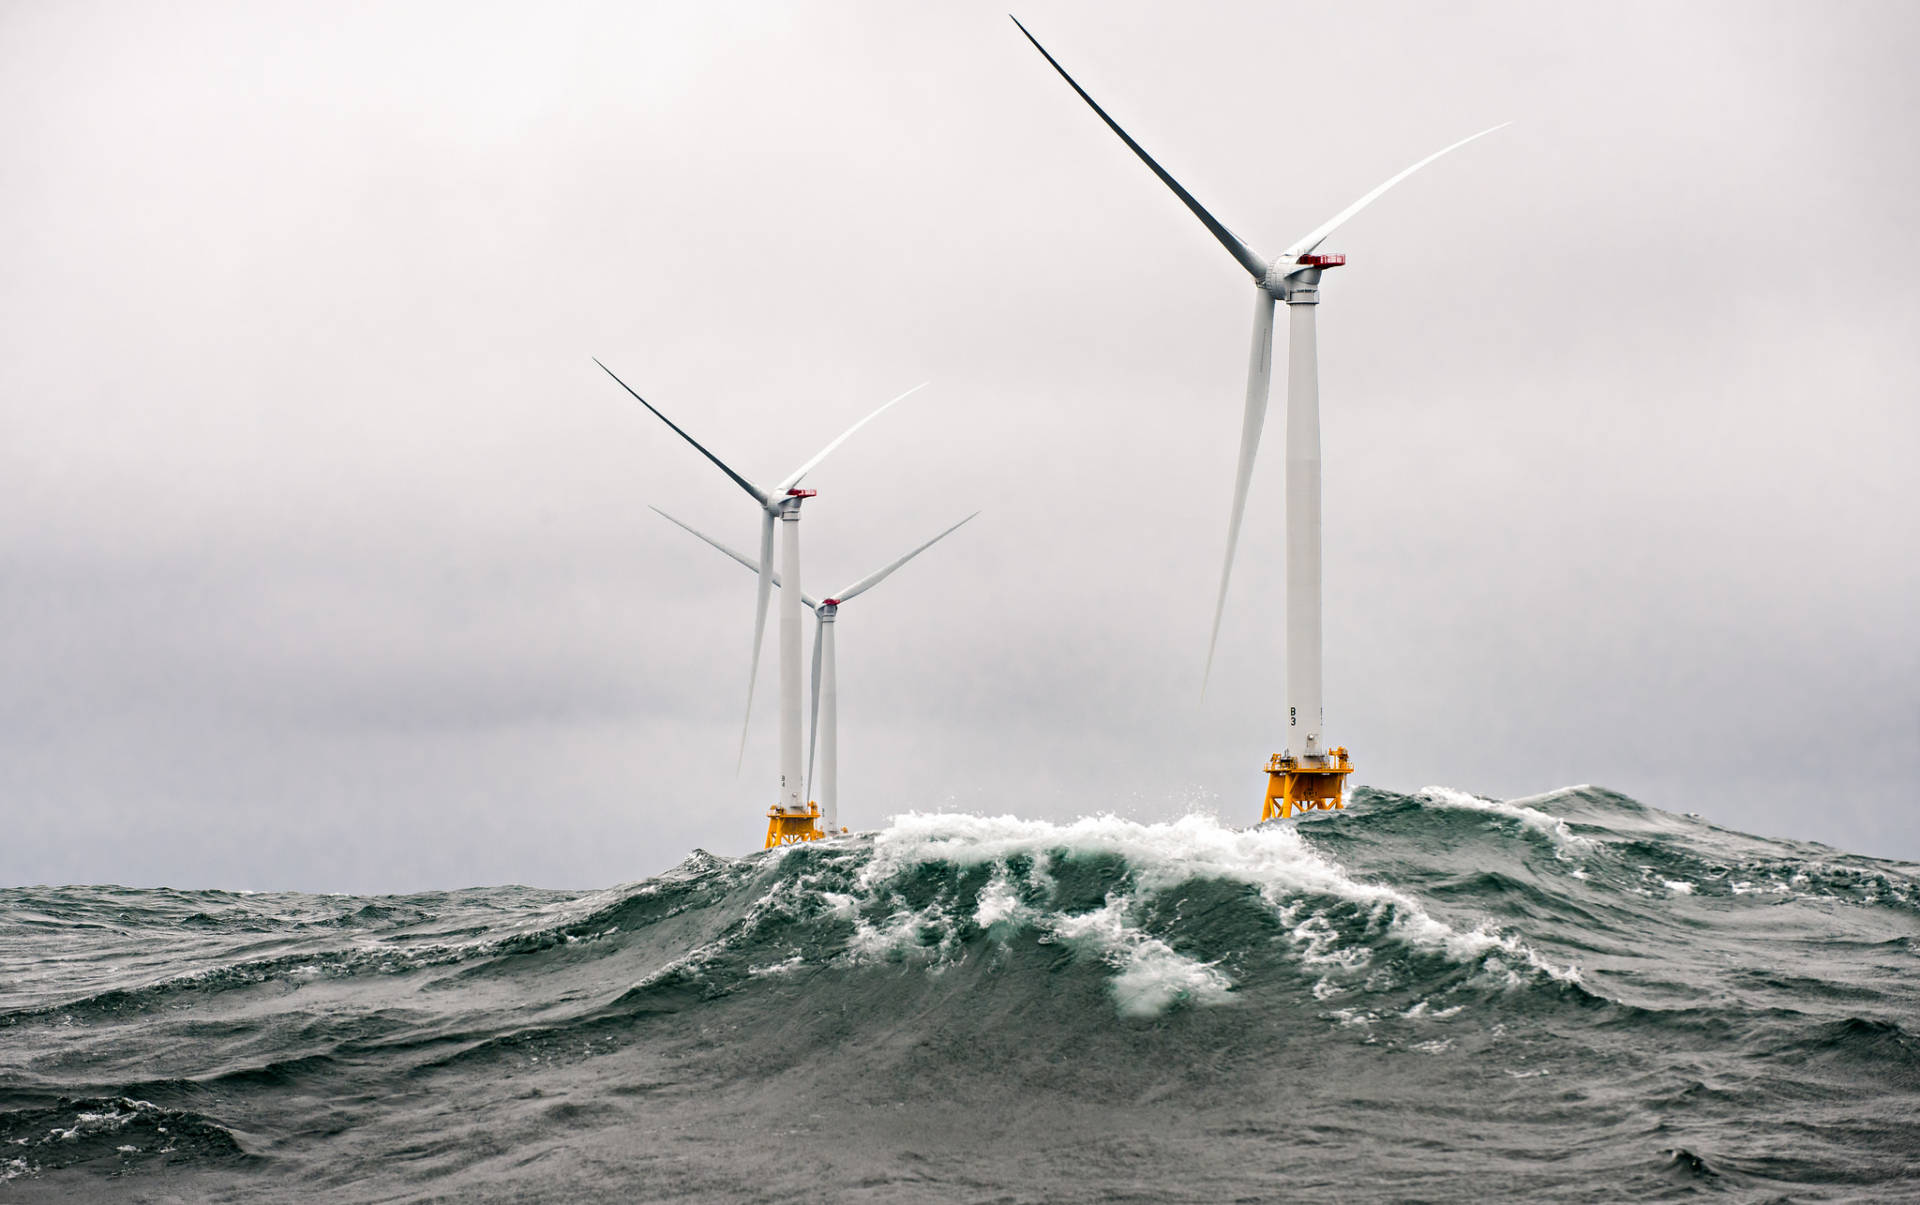 "The Block Island Wind Farm, America's first offshore wind farm, was built by Deepwater Wind and began operating in 2016. <a href=""https://www.flickr.com/photos/nrel/30353919862/in/photolist-NfgLRU-NqCGVD-NhY3ZH-ru8Ccz-NqCDhr-MsTFd5-fkdCvD-7niitk-7vsbp3-7mW9MZ-rQ1Z9-7bkKwH-75RaVy-9UHw8J-ffn7Ms-7nndF1-6EzbkB-7nfNXM-4nLdM4-2HZyo6-id9vH-ptagEB-5BoQXp-2ixwgw-hkdEBE-oxyXQ-FQEZwi-F2j4D2-FUh589-mCJEG-mCJq1-FWyTMn-FWyVVv-FQH2Ci-F2j86n-F28ht3-FQH3ED-FUeX5f-F2hwzF-F28equ-F2j2NP-F2hw9a-FWyUfB-HiBV4s-F2hwNB-FUh2NQ-FNnrts-F28i6A-FwsnC5-FQFv4K"" target=""_blank"" rel=""noopener noreferrer"">NREL</a>/flickr"